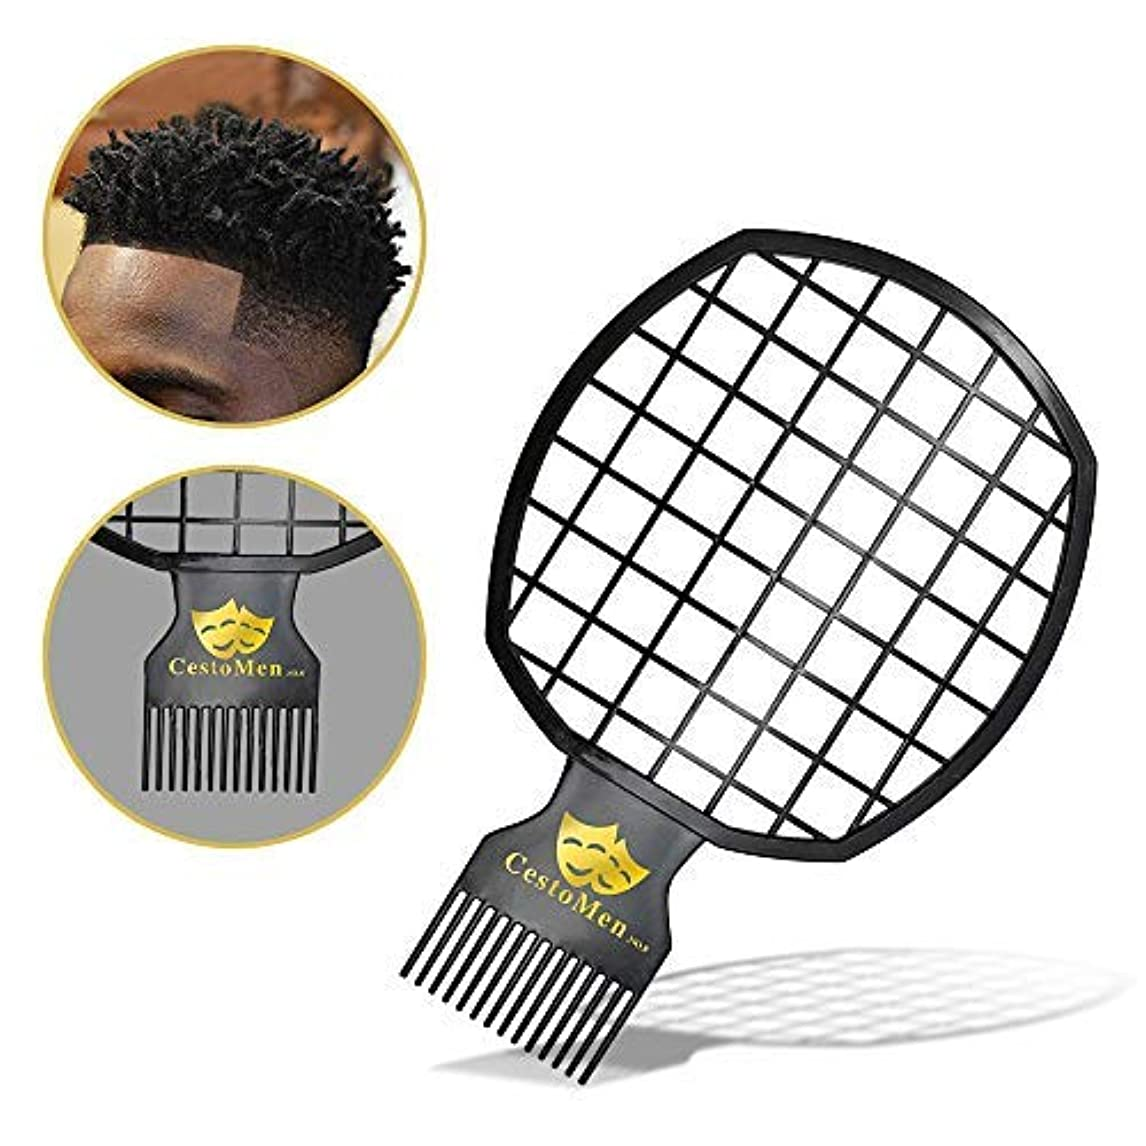 待つ痛みマイコンMagic Twist Hair Coils Comb Tool, Afro Pick Hair Curl Sponge Brush (Black) [並行輸入品]